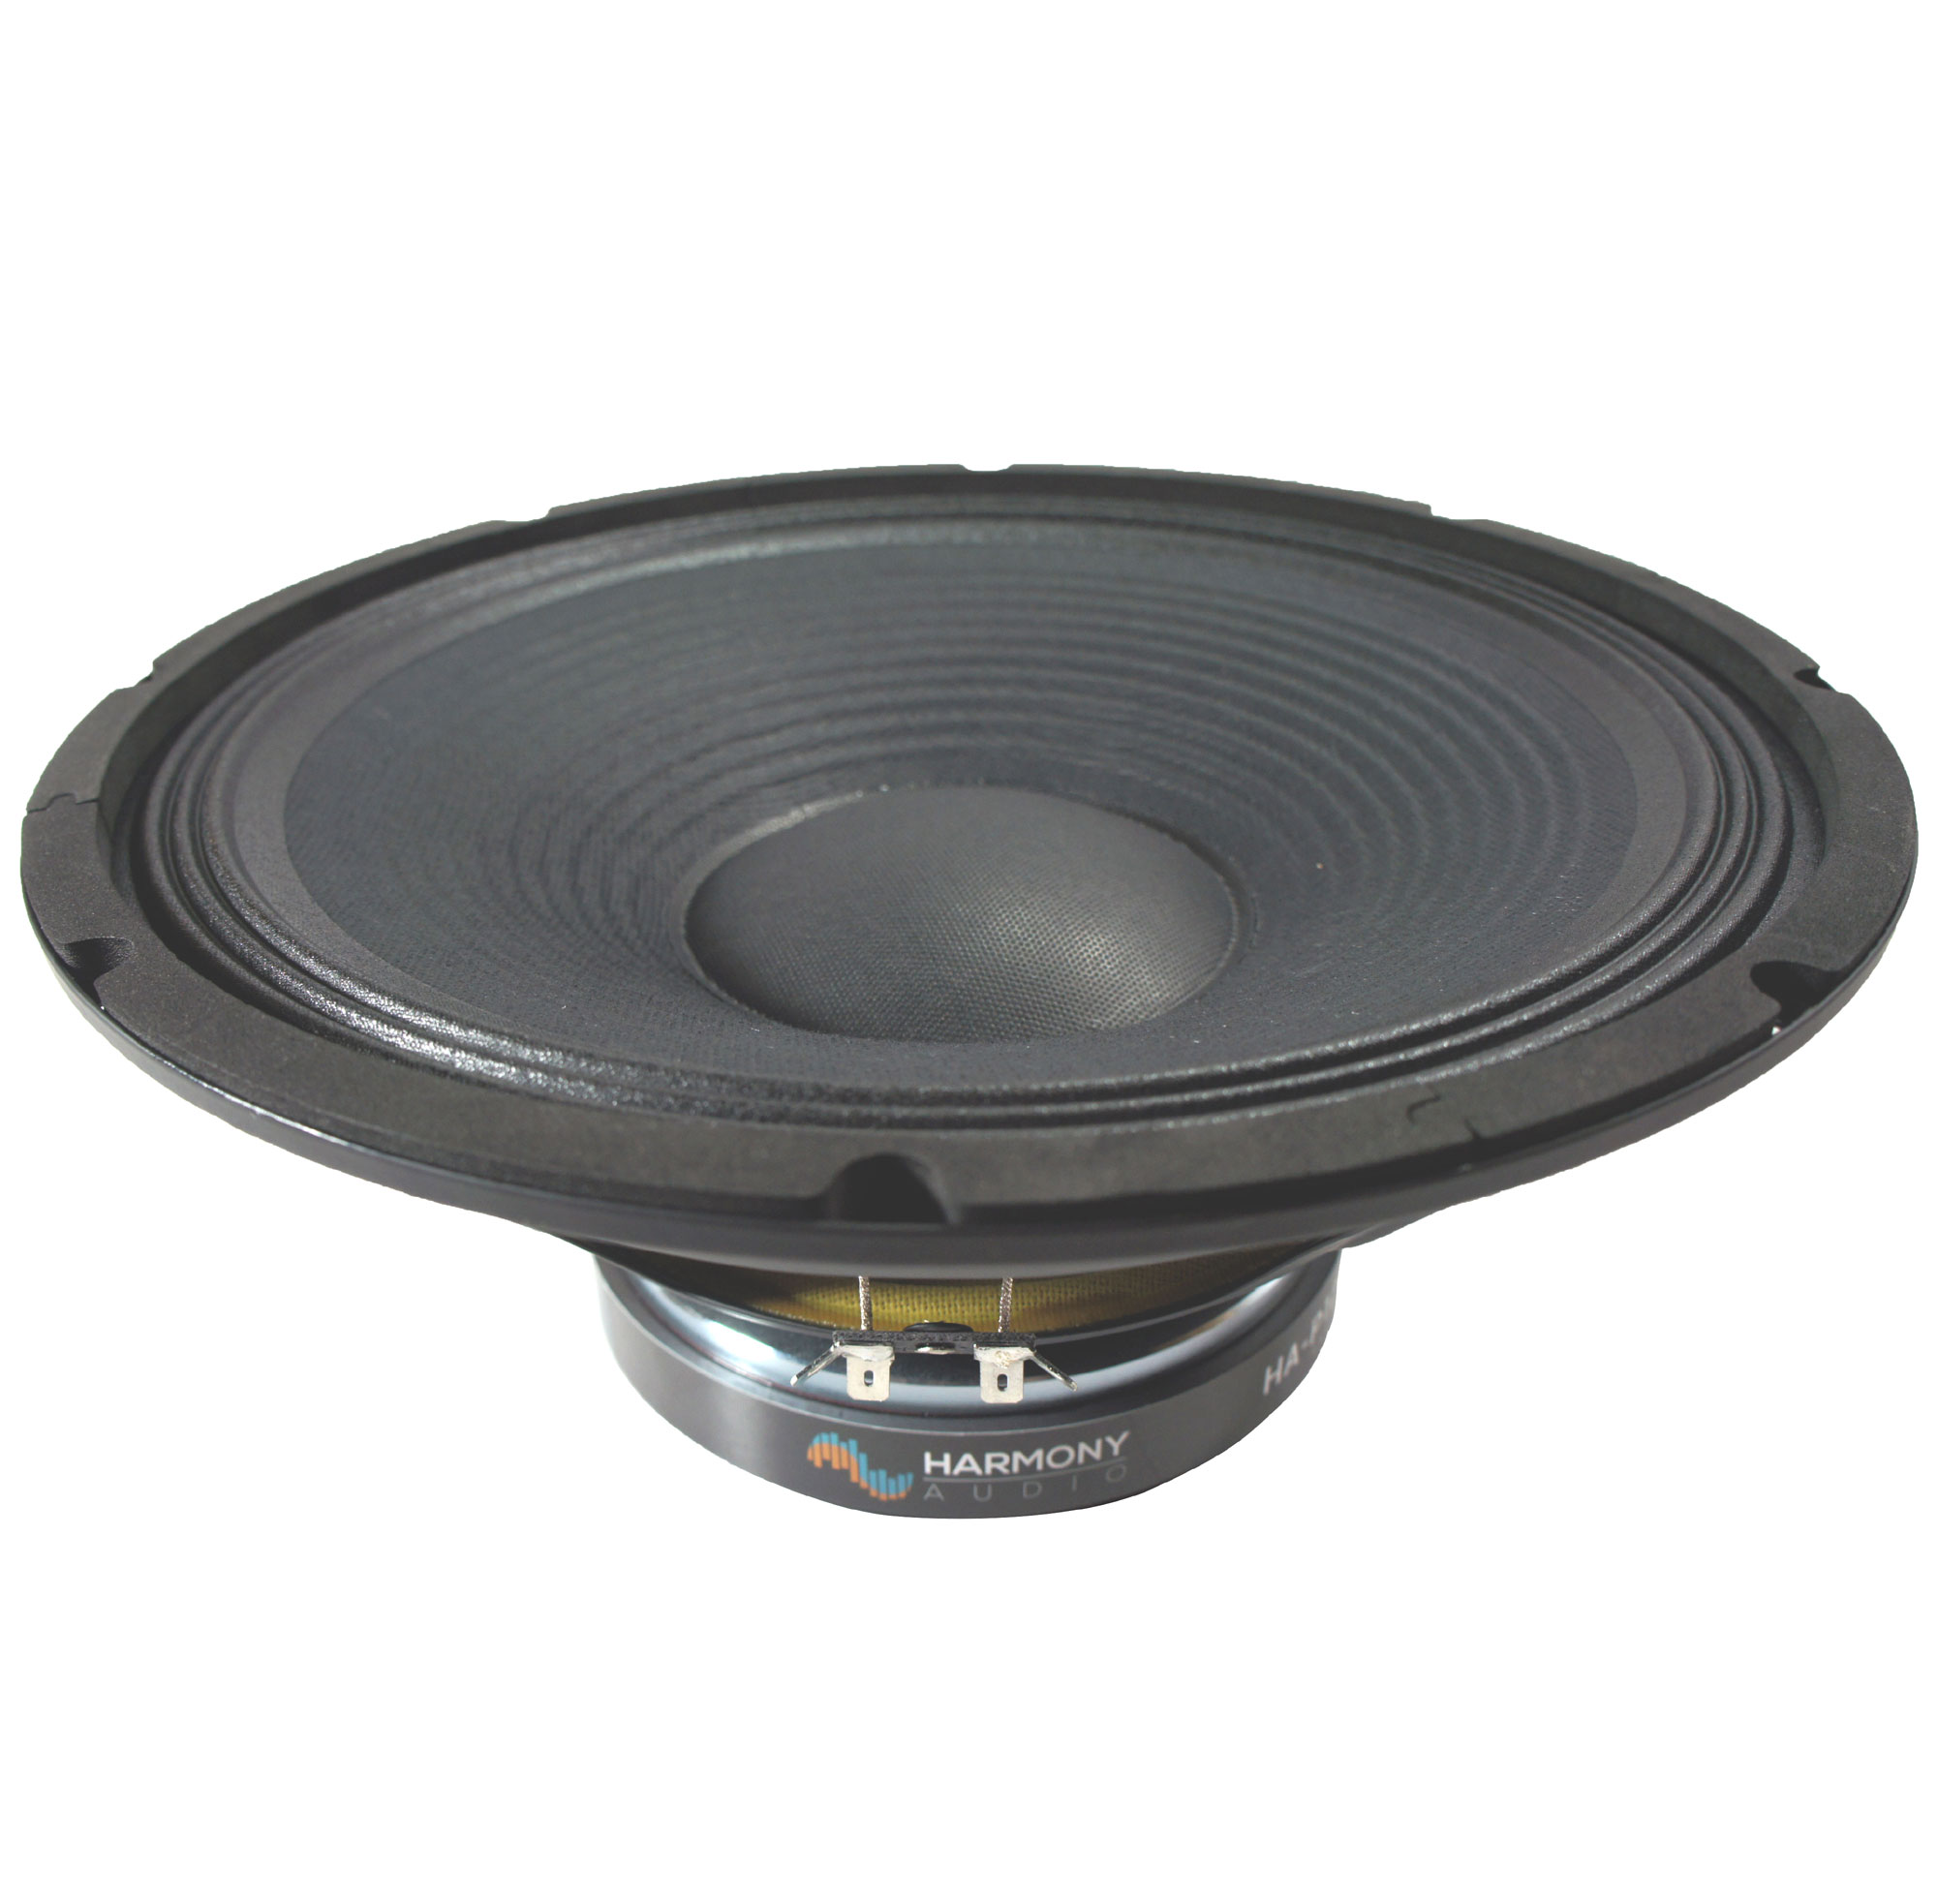 "Harmony HA-P12WS16 Raw Replacement 12"" Pro PA 500W Subwoofer / Speaker 16 Ohm Woofer - 48oz Magnet"